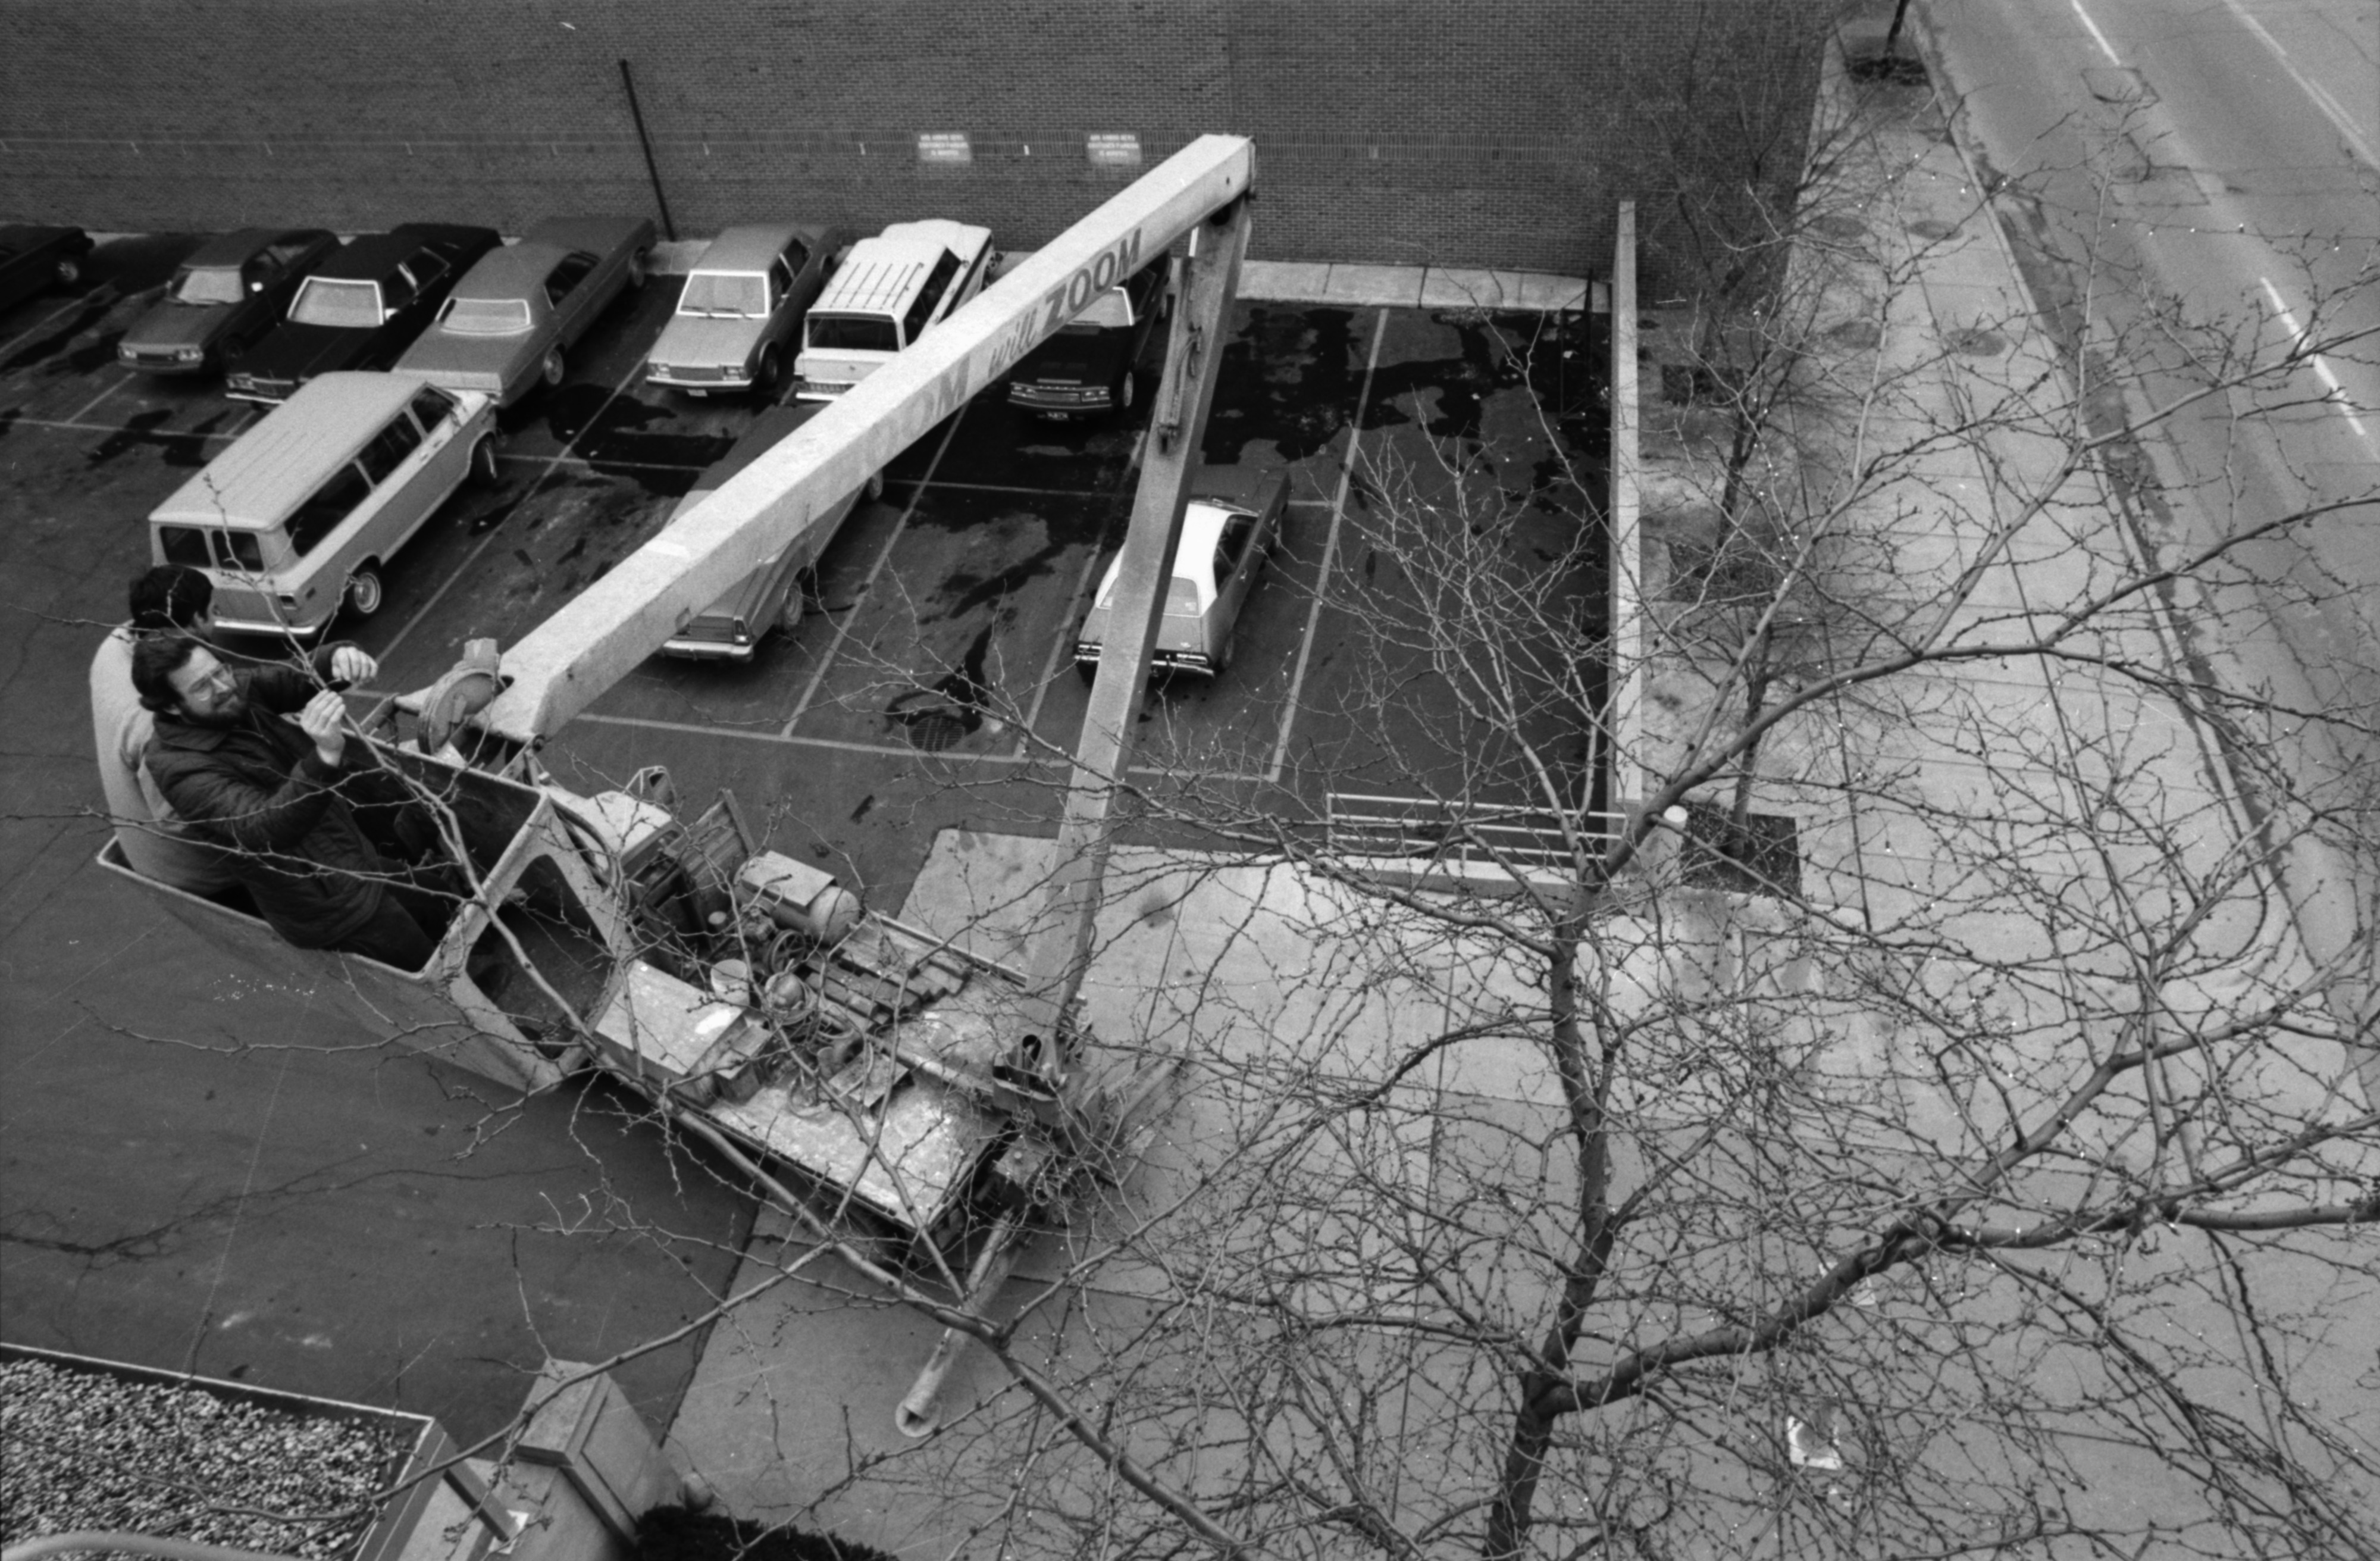 Putting up Christmas lights at the Ann Arbor News, December 1981 image